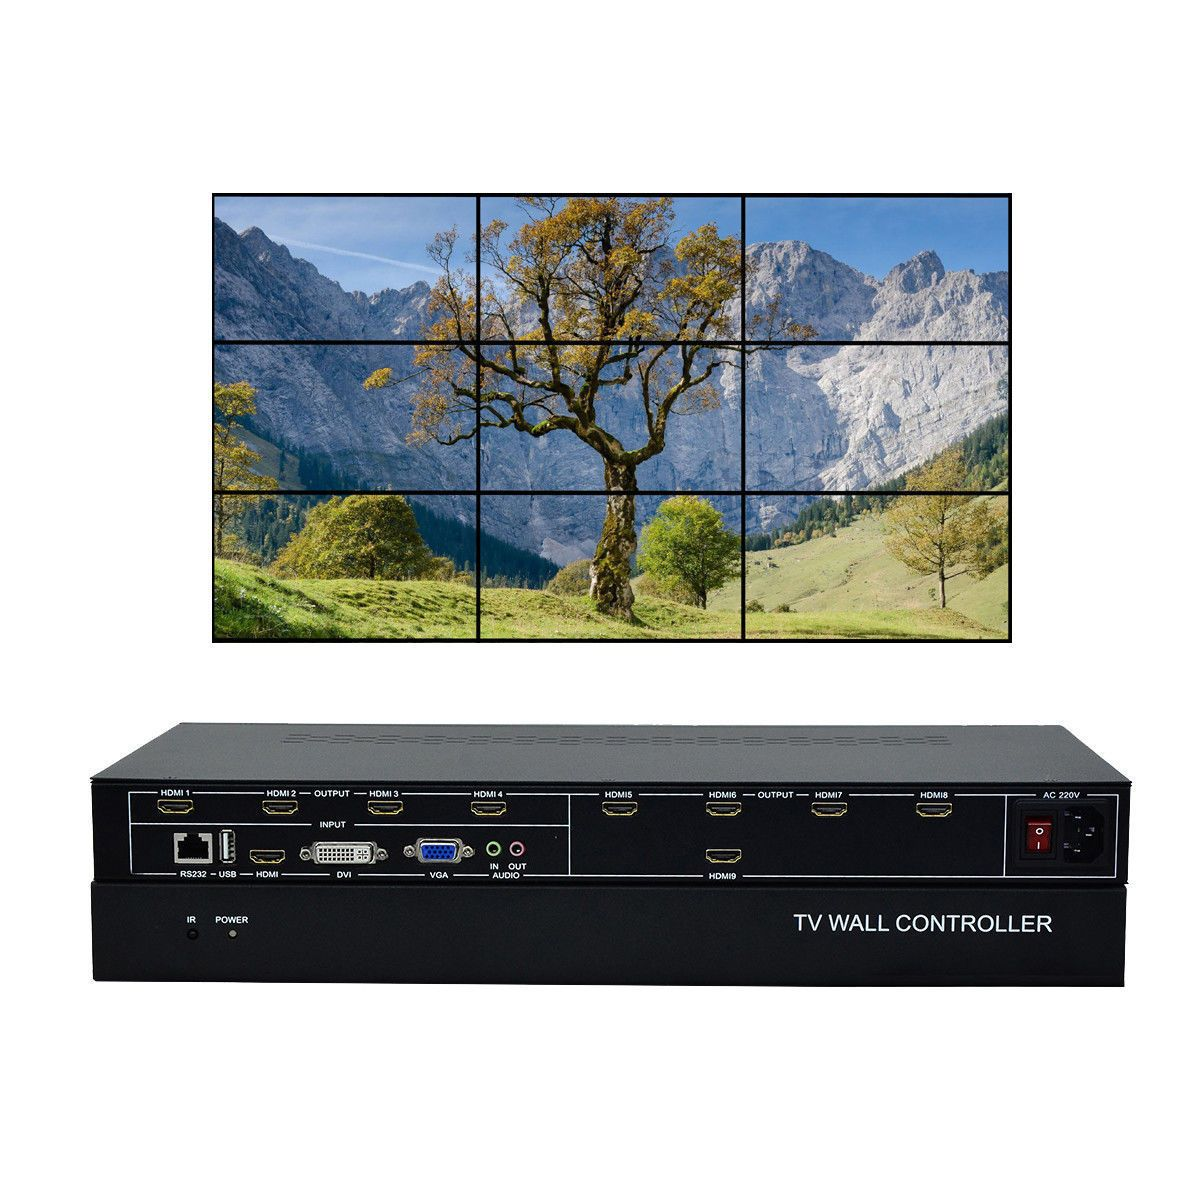 ESZYM 9 Kanal TV Video Wand Controller 3x3 2x4 4x2 HDMI DVI VGA USB video Prozessor